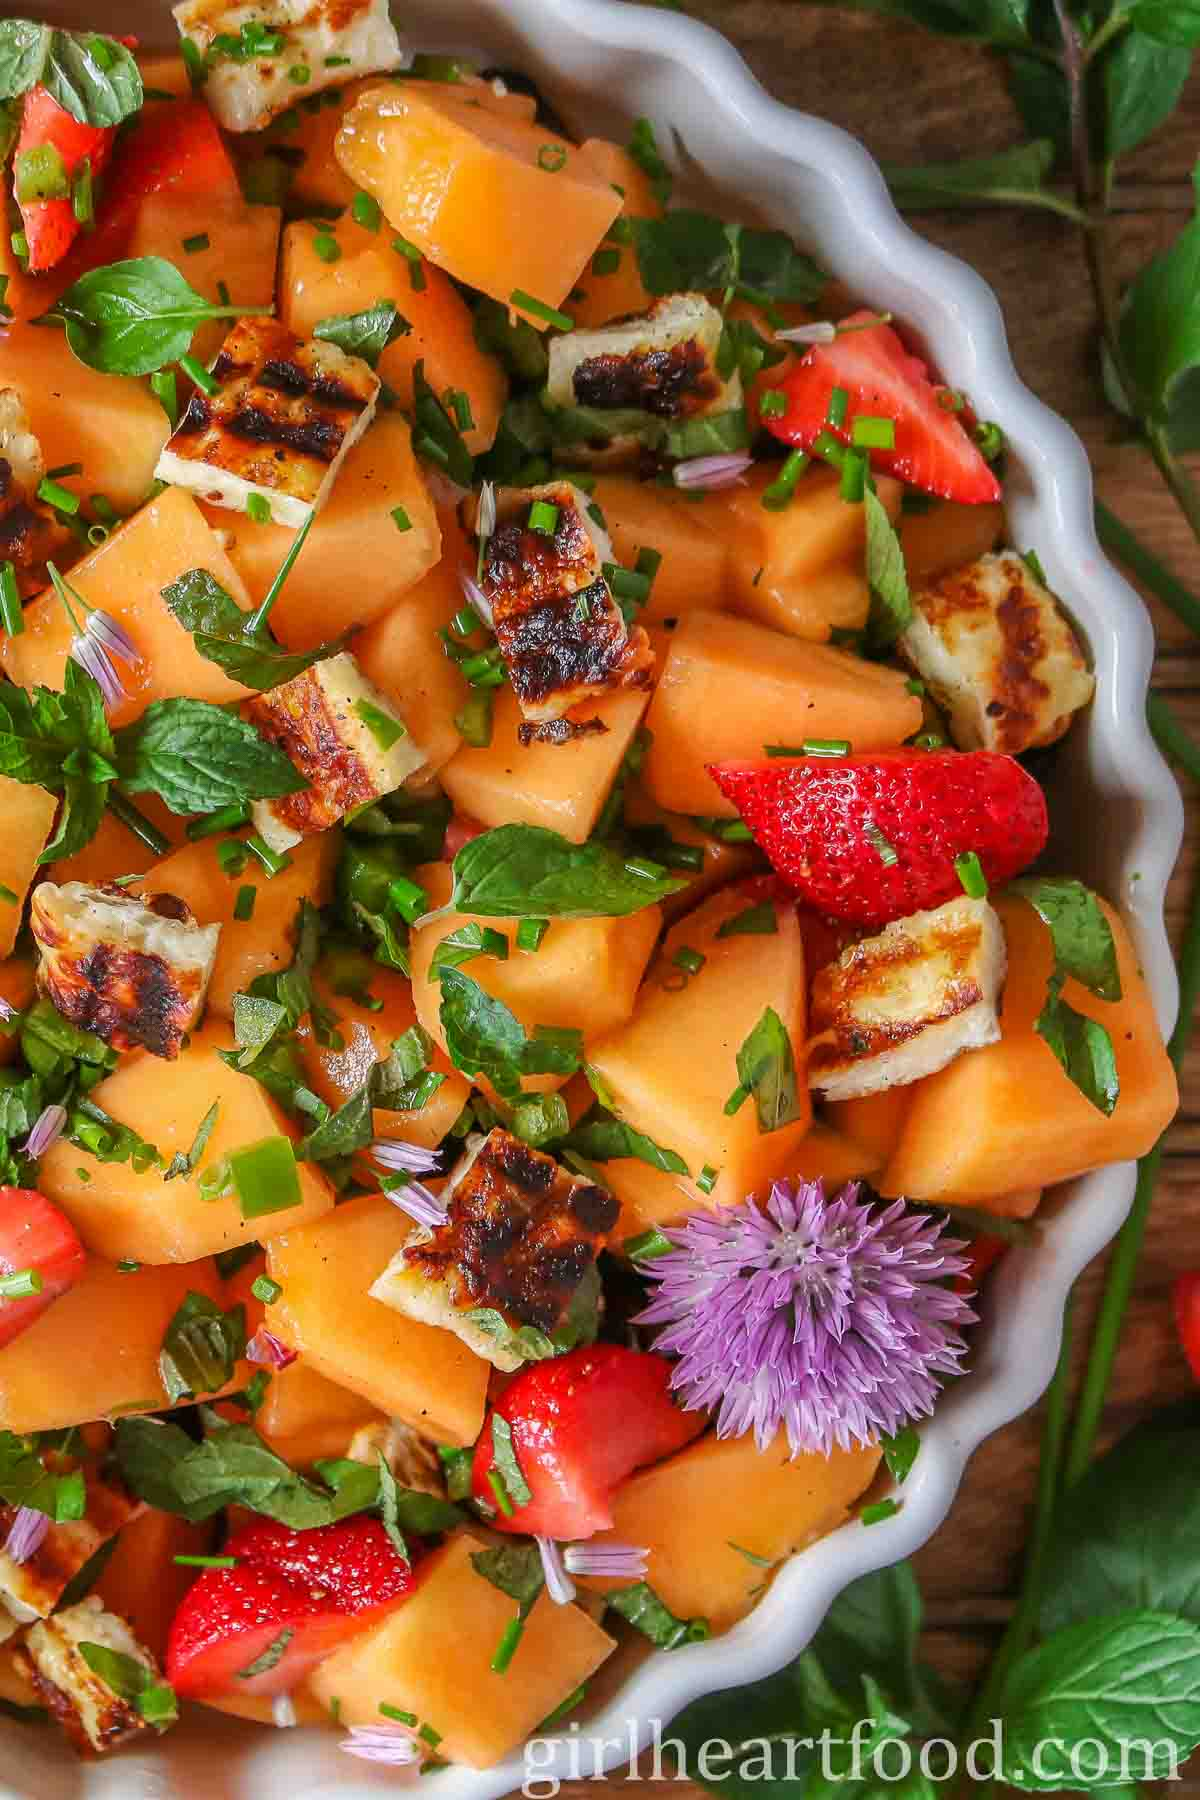 Close up of a cantaloupe salad recipe garnished with a chive flower.